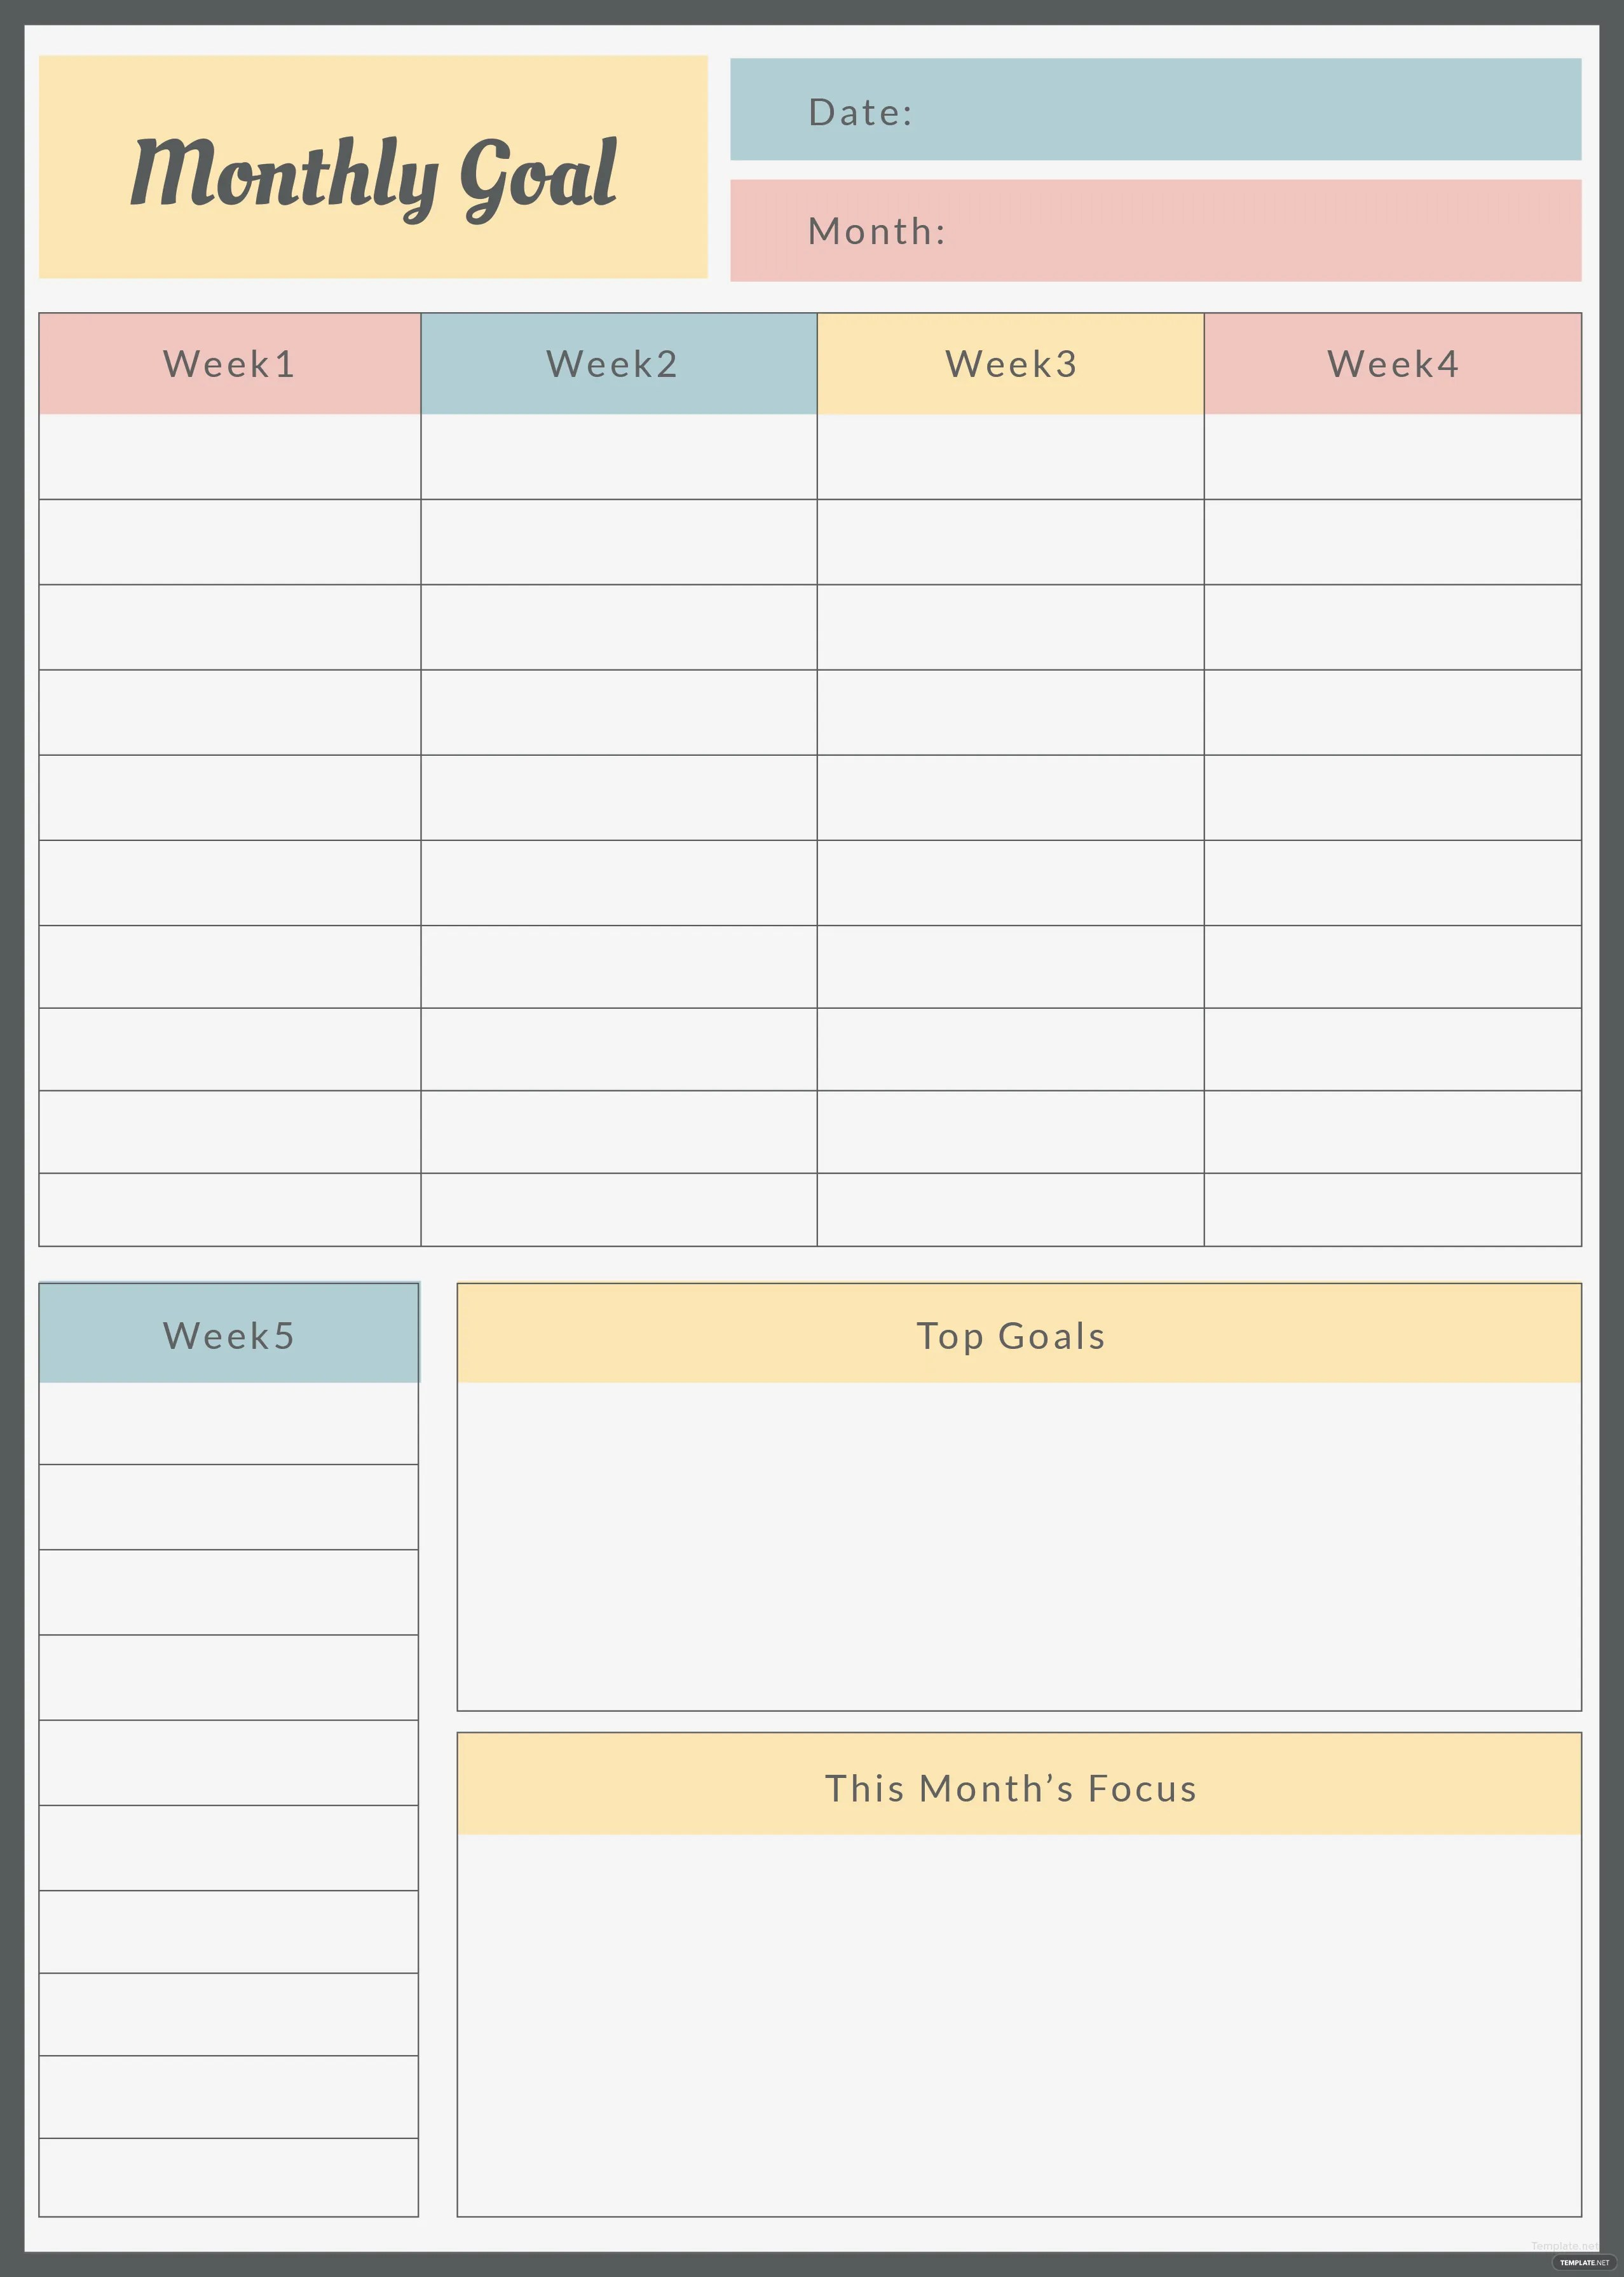 Free Monthly Goal Planner Template In Adobe Photoshop Adobe Illustrator Adobe Indesign